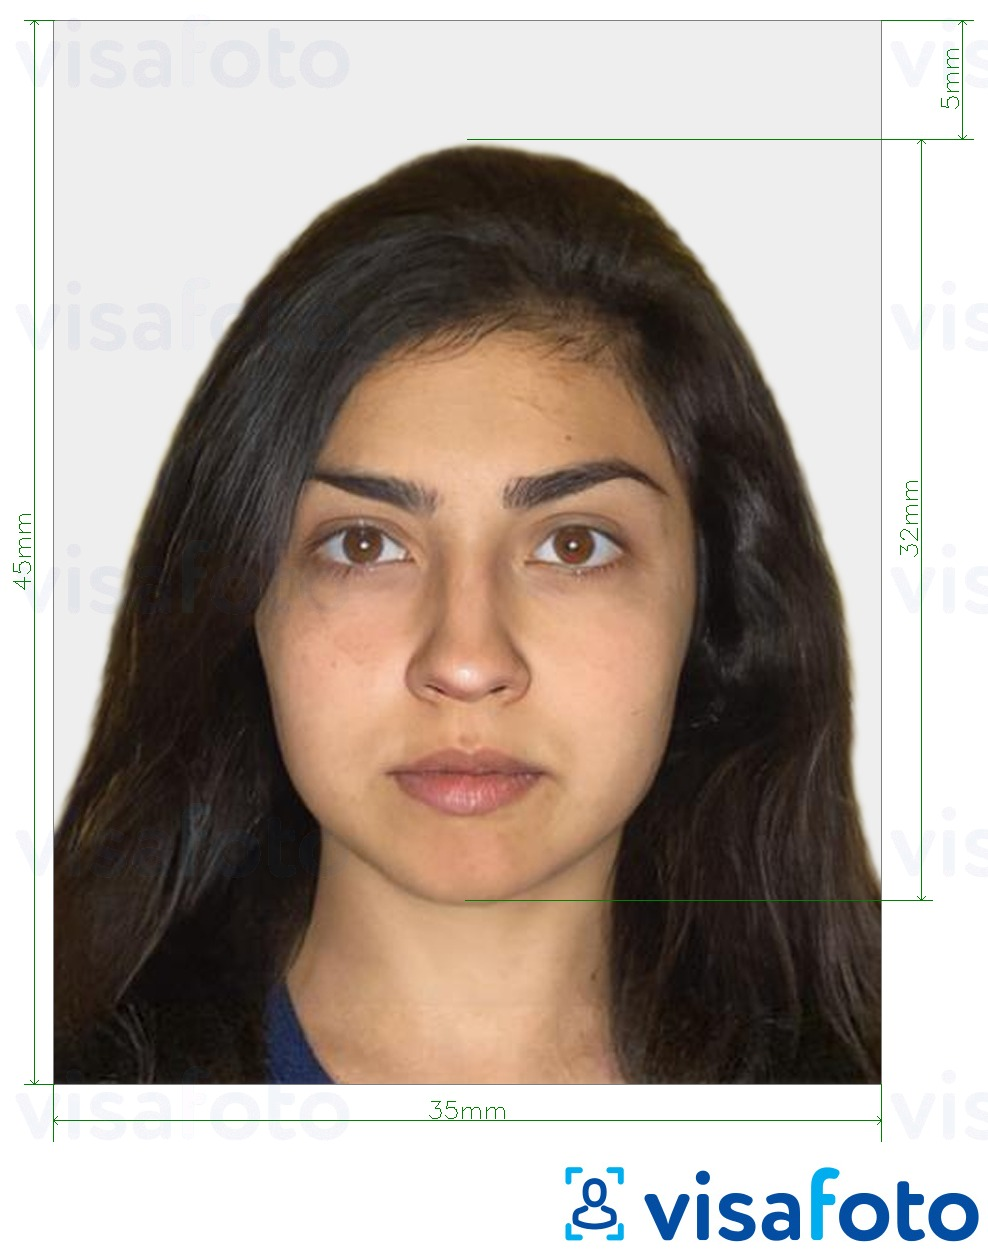 Example of photo for Israel Passport 35x45 mm (3.5x4.5 cm) with exact size specification